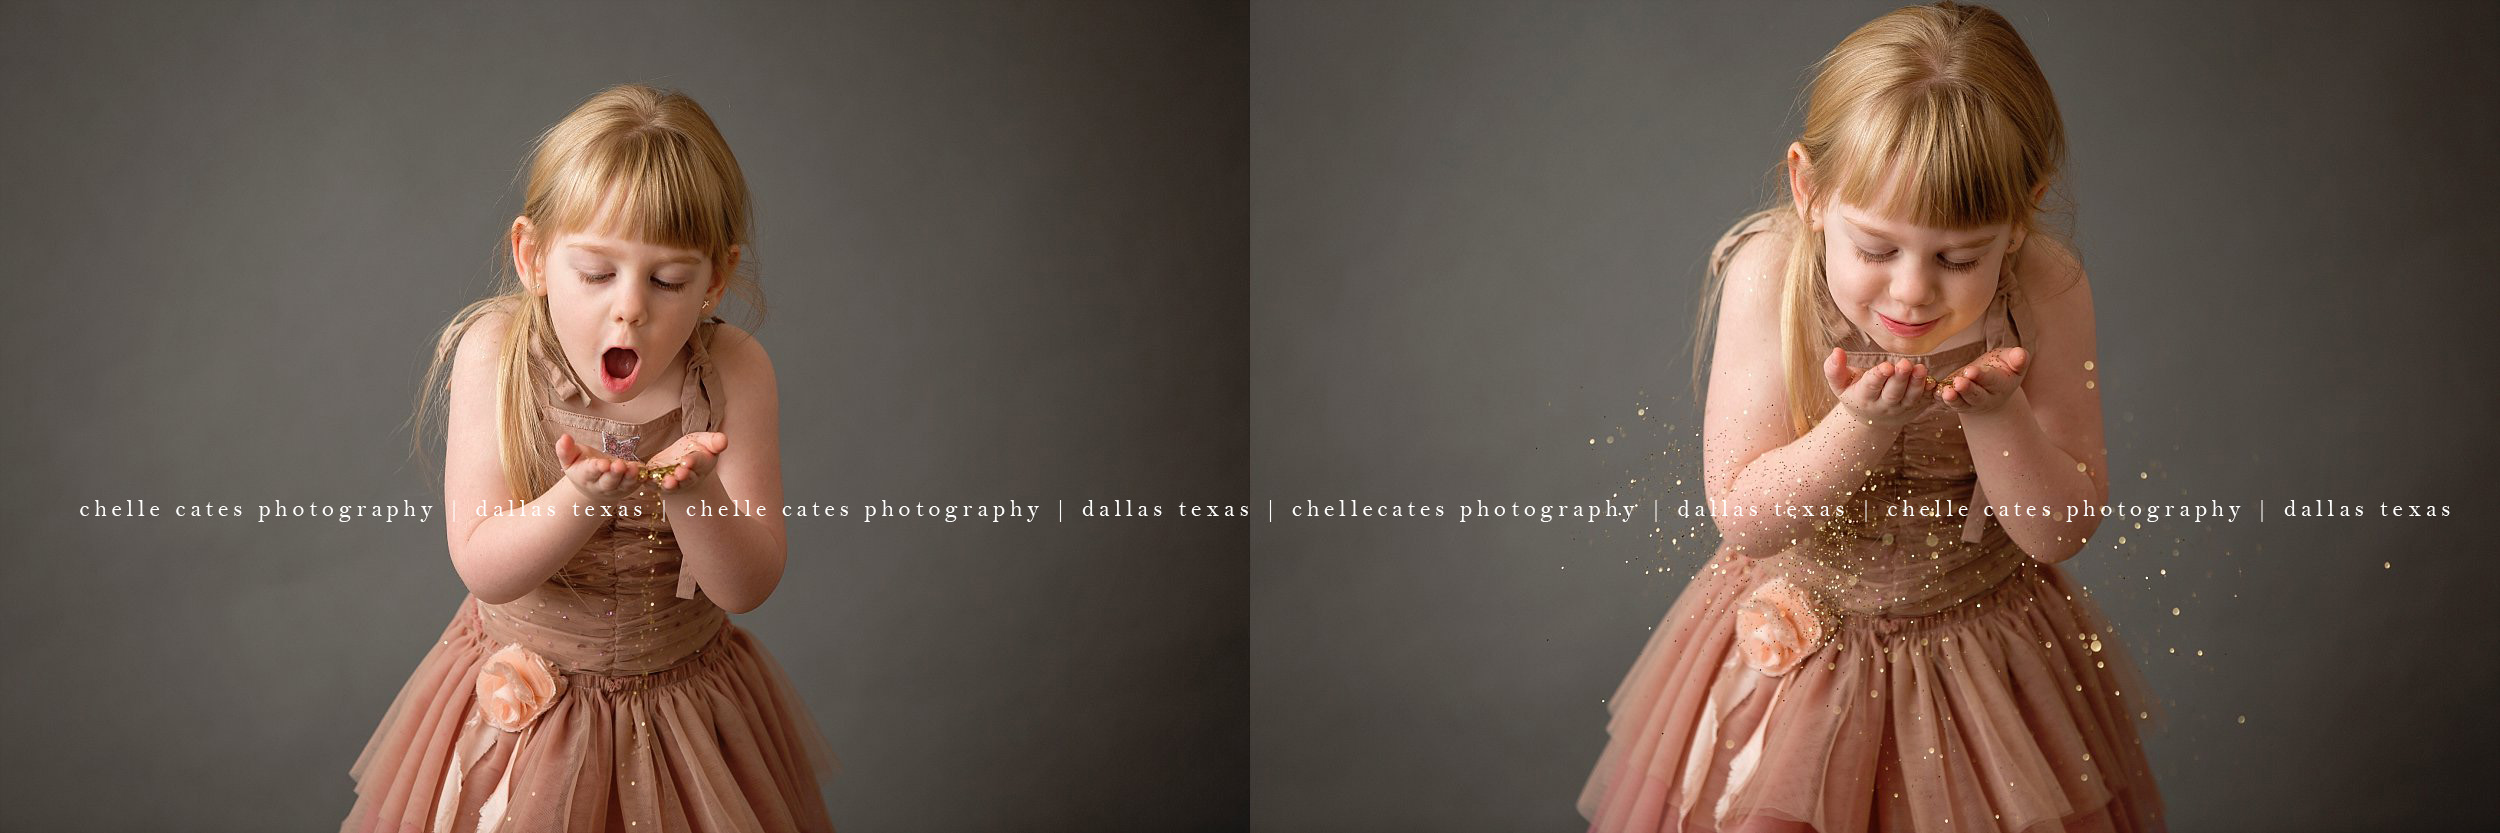 Wearing a pink tutu du monde dress, 4 year old blonde girl with hand full of glitter blows to make glitter go everywhere! Photographed on Savage Thunder Gray seamless paper at Chelle Cates Photography Studio in Dallas Texas.